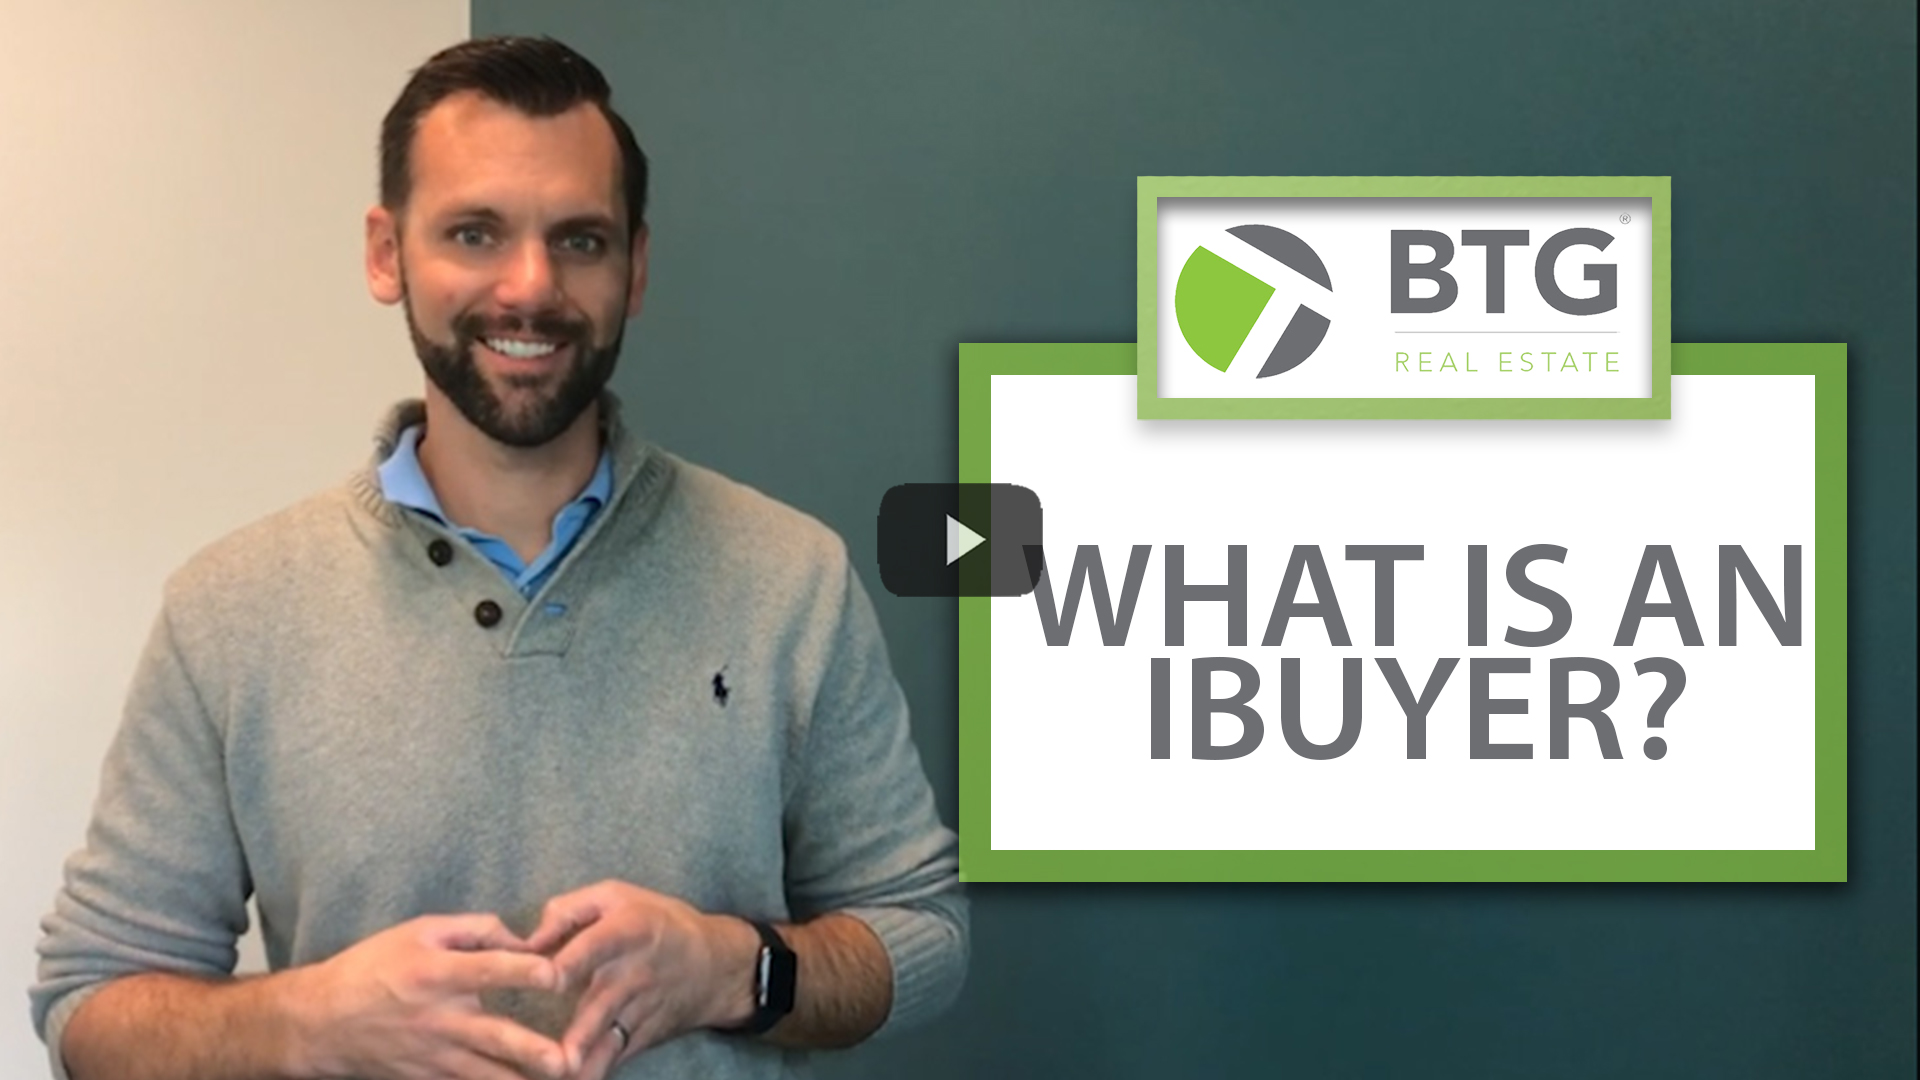 What You Should Know About Working With iBuyers